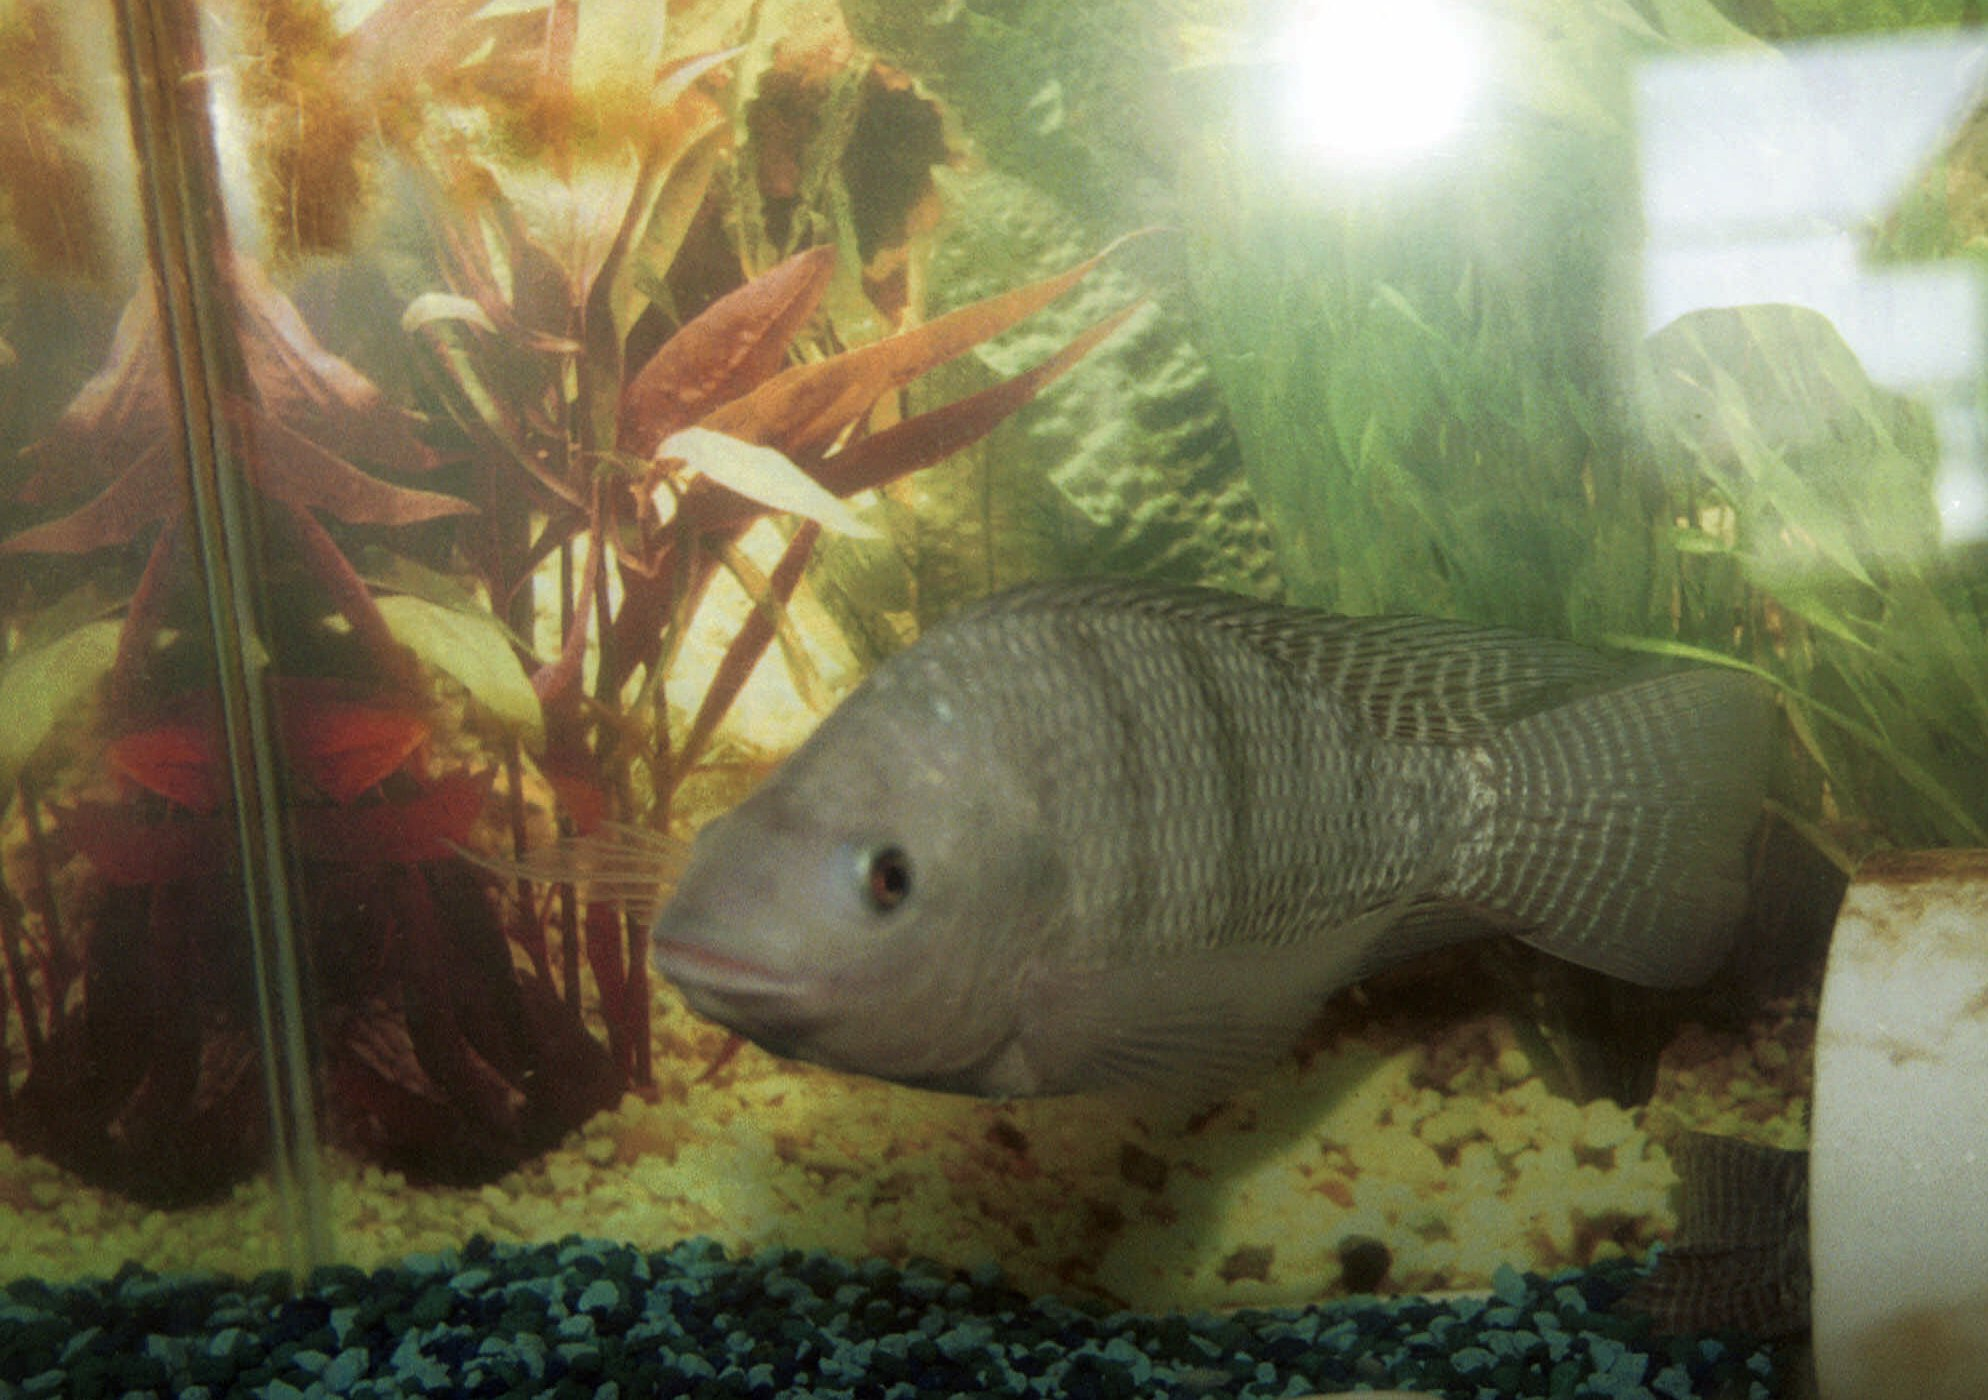 Tilapia farm could get shut down by TPWD - Houston Chronicle